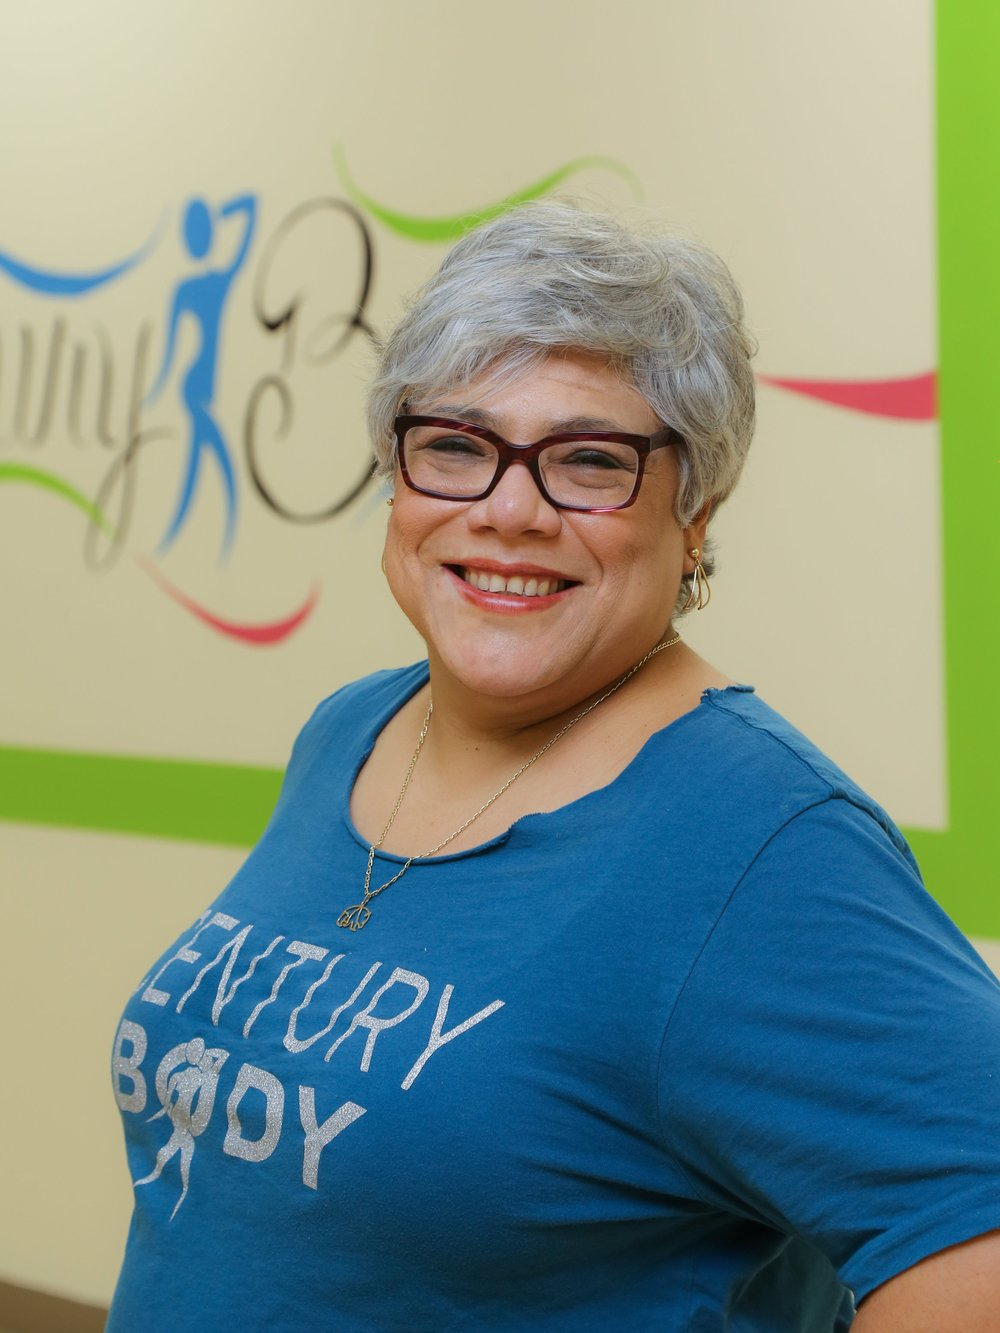 Eugenia Romero   I've been a staff member of Century Body for over 7 years. Like most at CB, I was a student first in a continuous journey to better health and Zumba® Fitness is the best way to work out without noticing. I love to dance and I love to sing to many of the songs. As a staff member, I love to welcome new folks into the studio and I always make sure to learn their names as I want them to know we are happy they've come to dance with us. My husband loves STRONG by Zumba®, and sometimes he would even come to a Zumba® Fitness class with me. A family that works out together lives happily. I'm working on learning to lead some songs as I also have my Zumba® license, so, hopefully in the near future, you'd see me leading a new song.